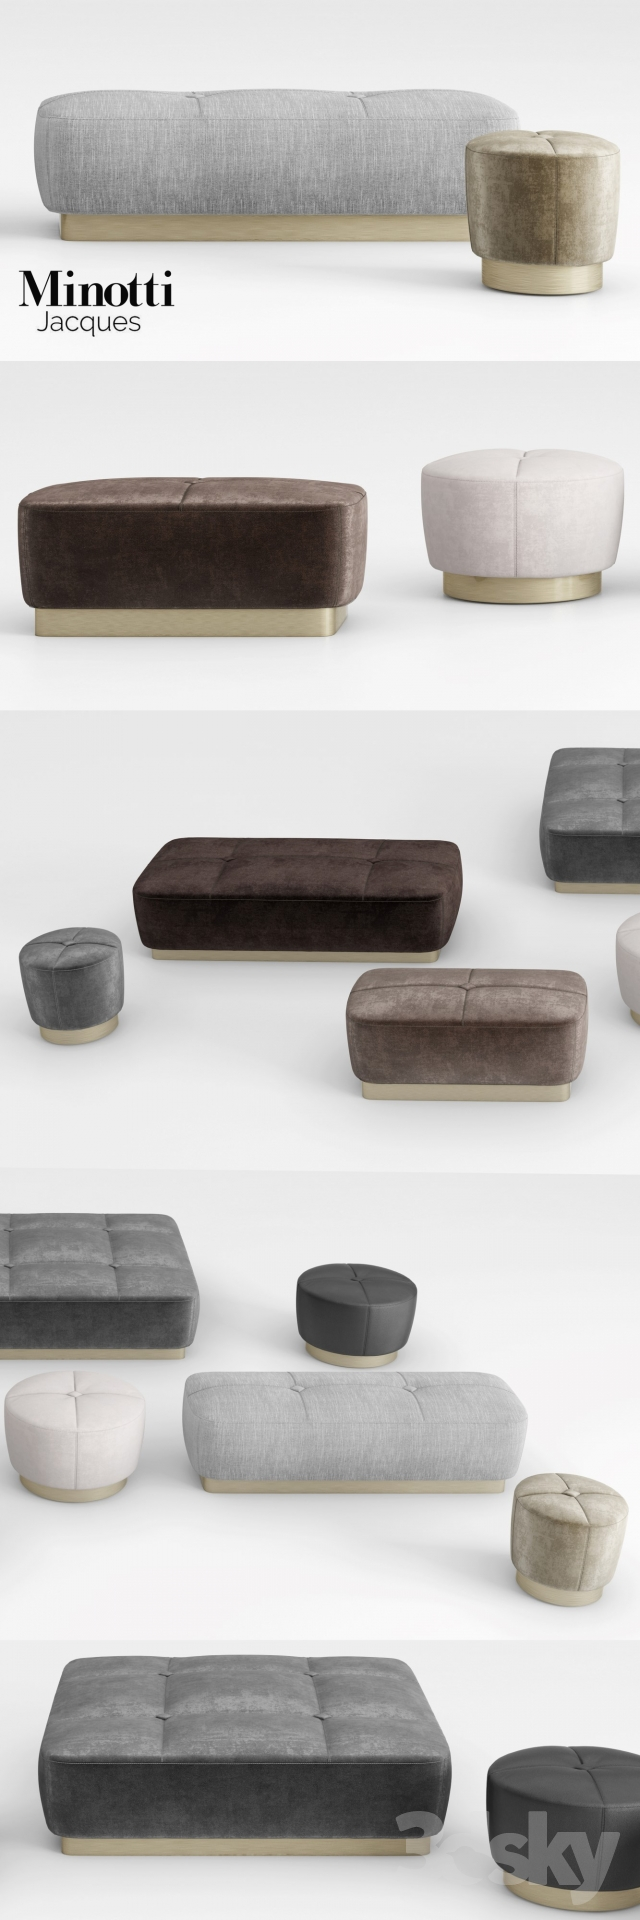 3d Models Other Soft Seating Minotti Jacques Ottomans